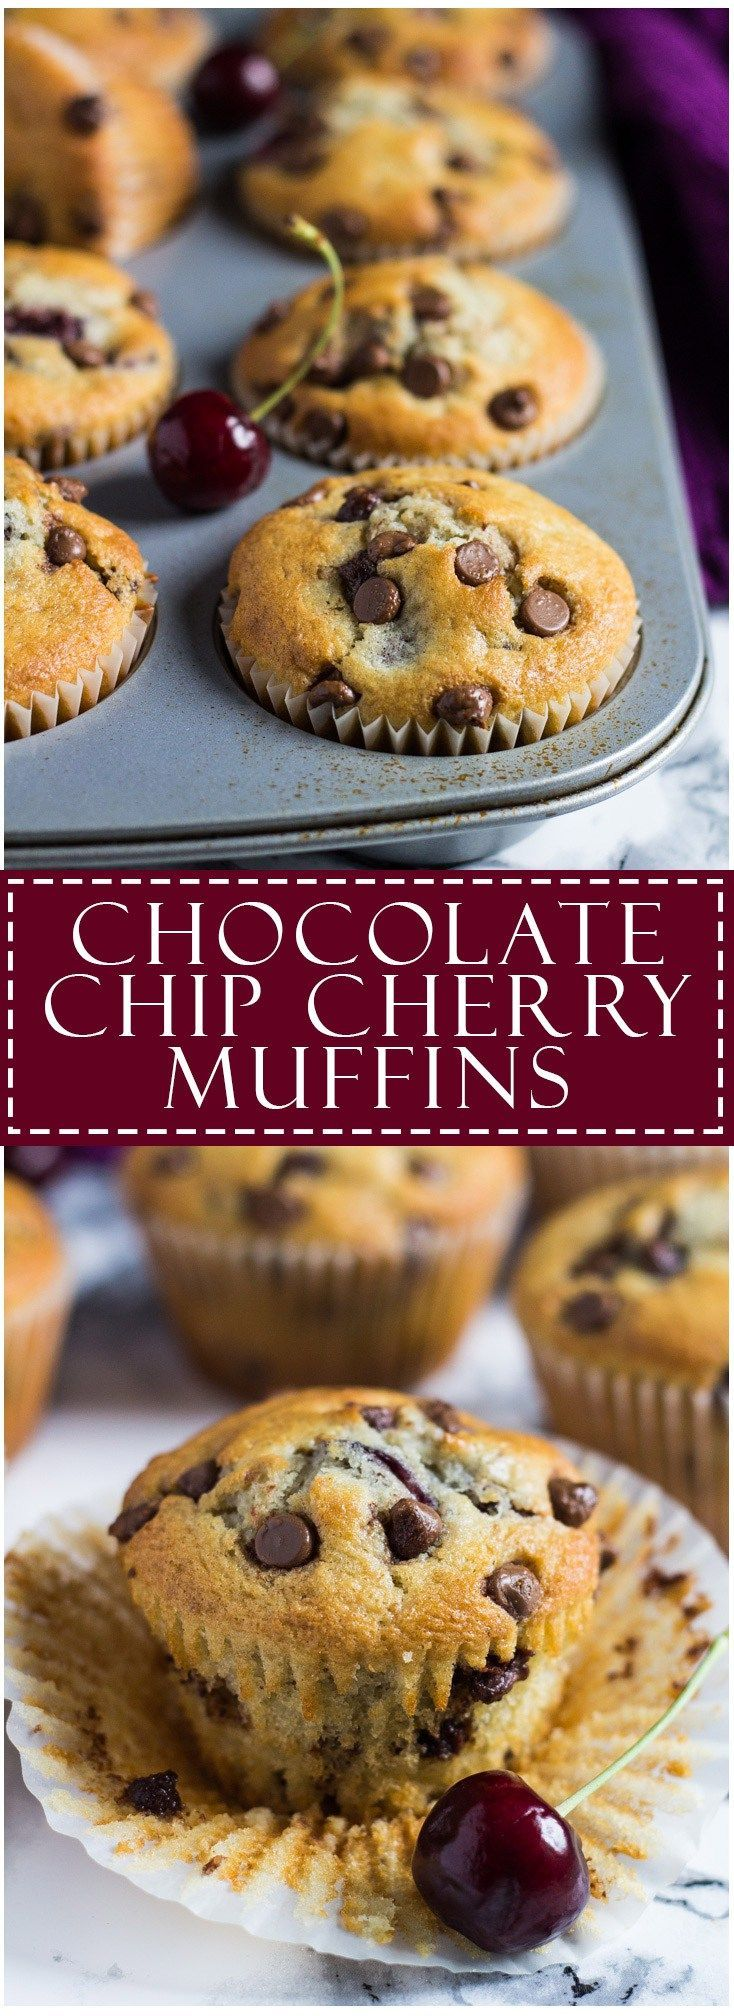 Chocolate Chip Cherry Muffins | Marsha's Baking Addiction